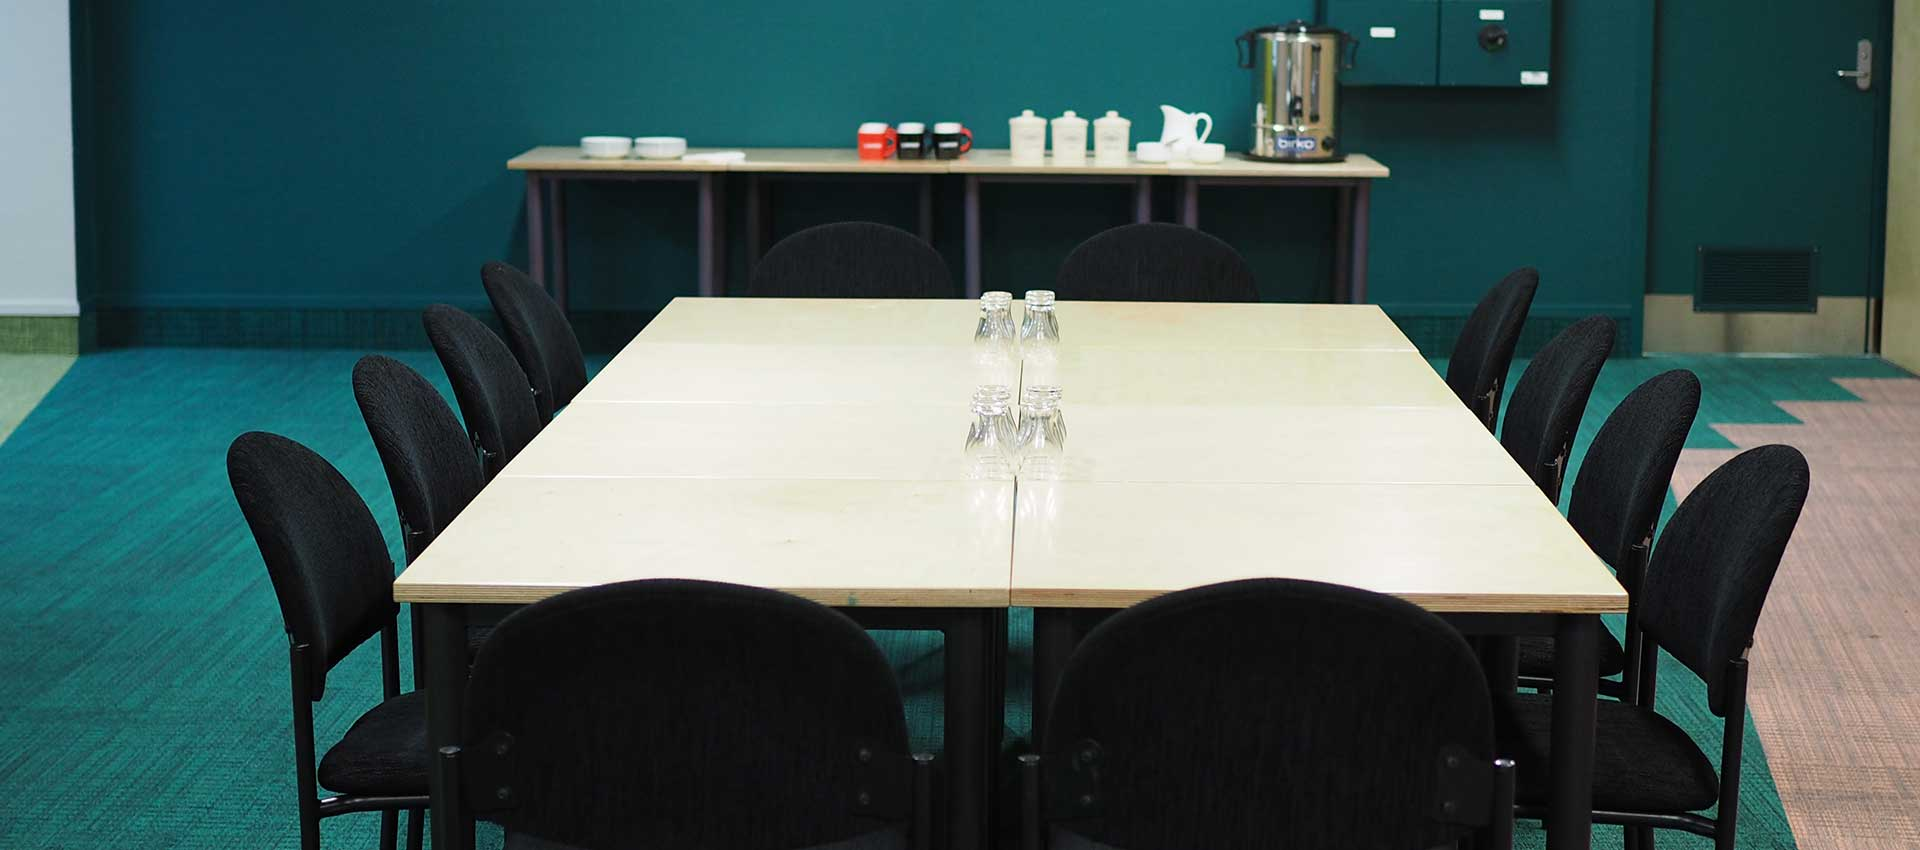 Table set for meeting